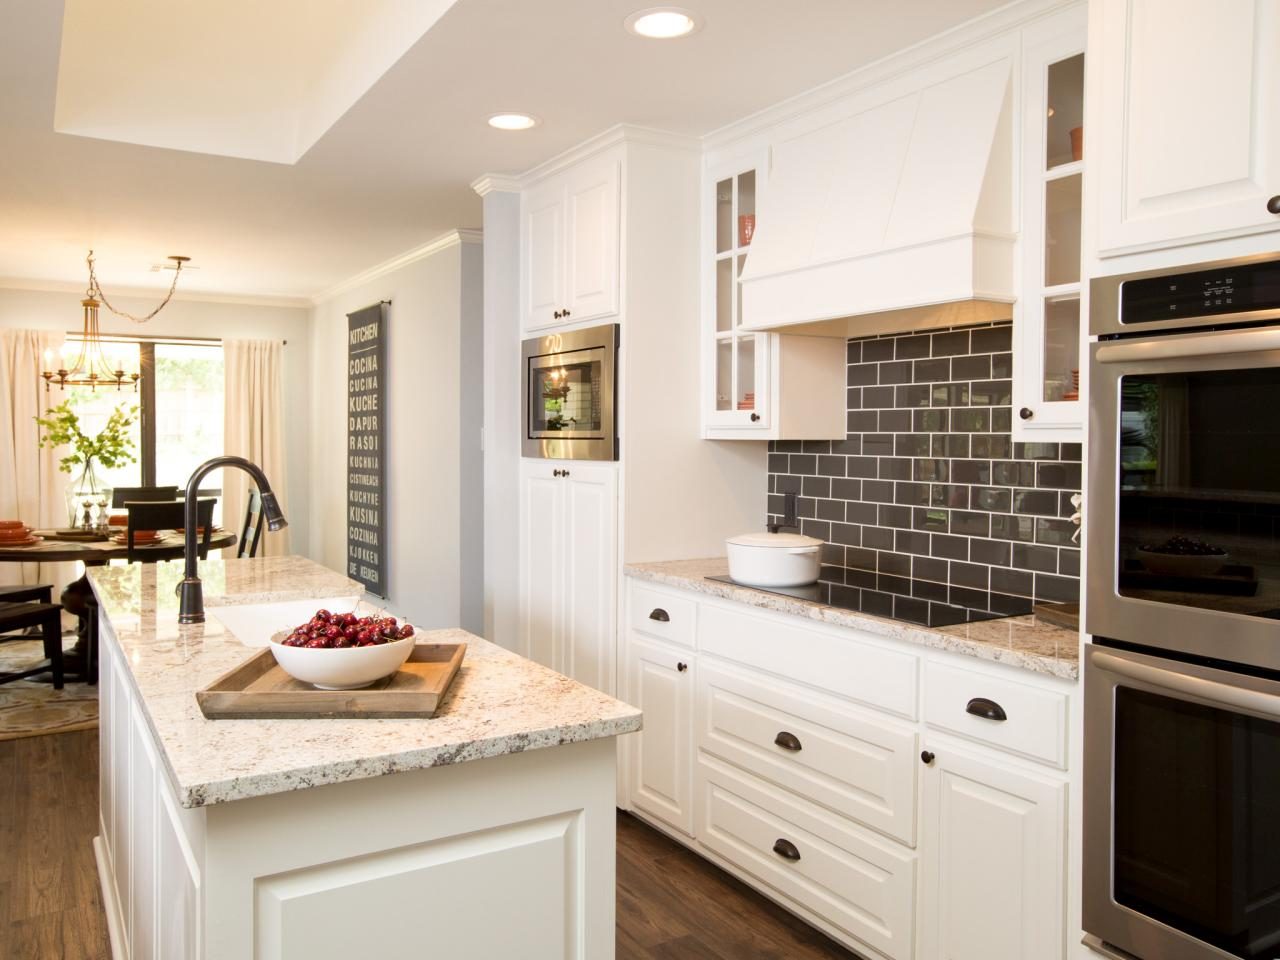 Fixer upper modern kitchen - Fixer Upper Black And White Kitchen